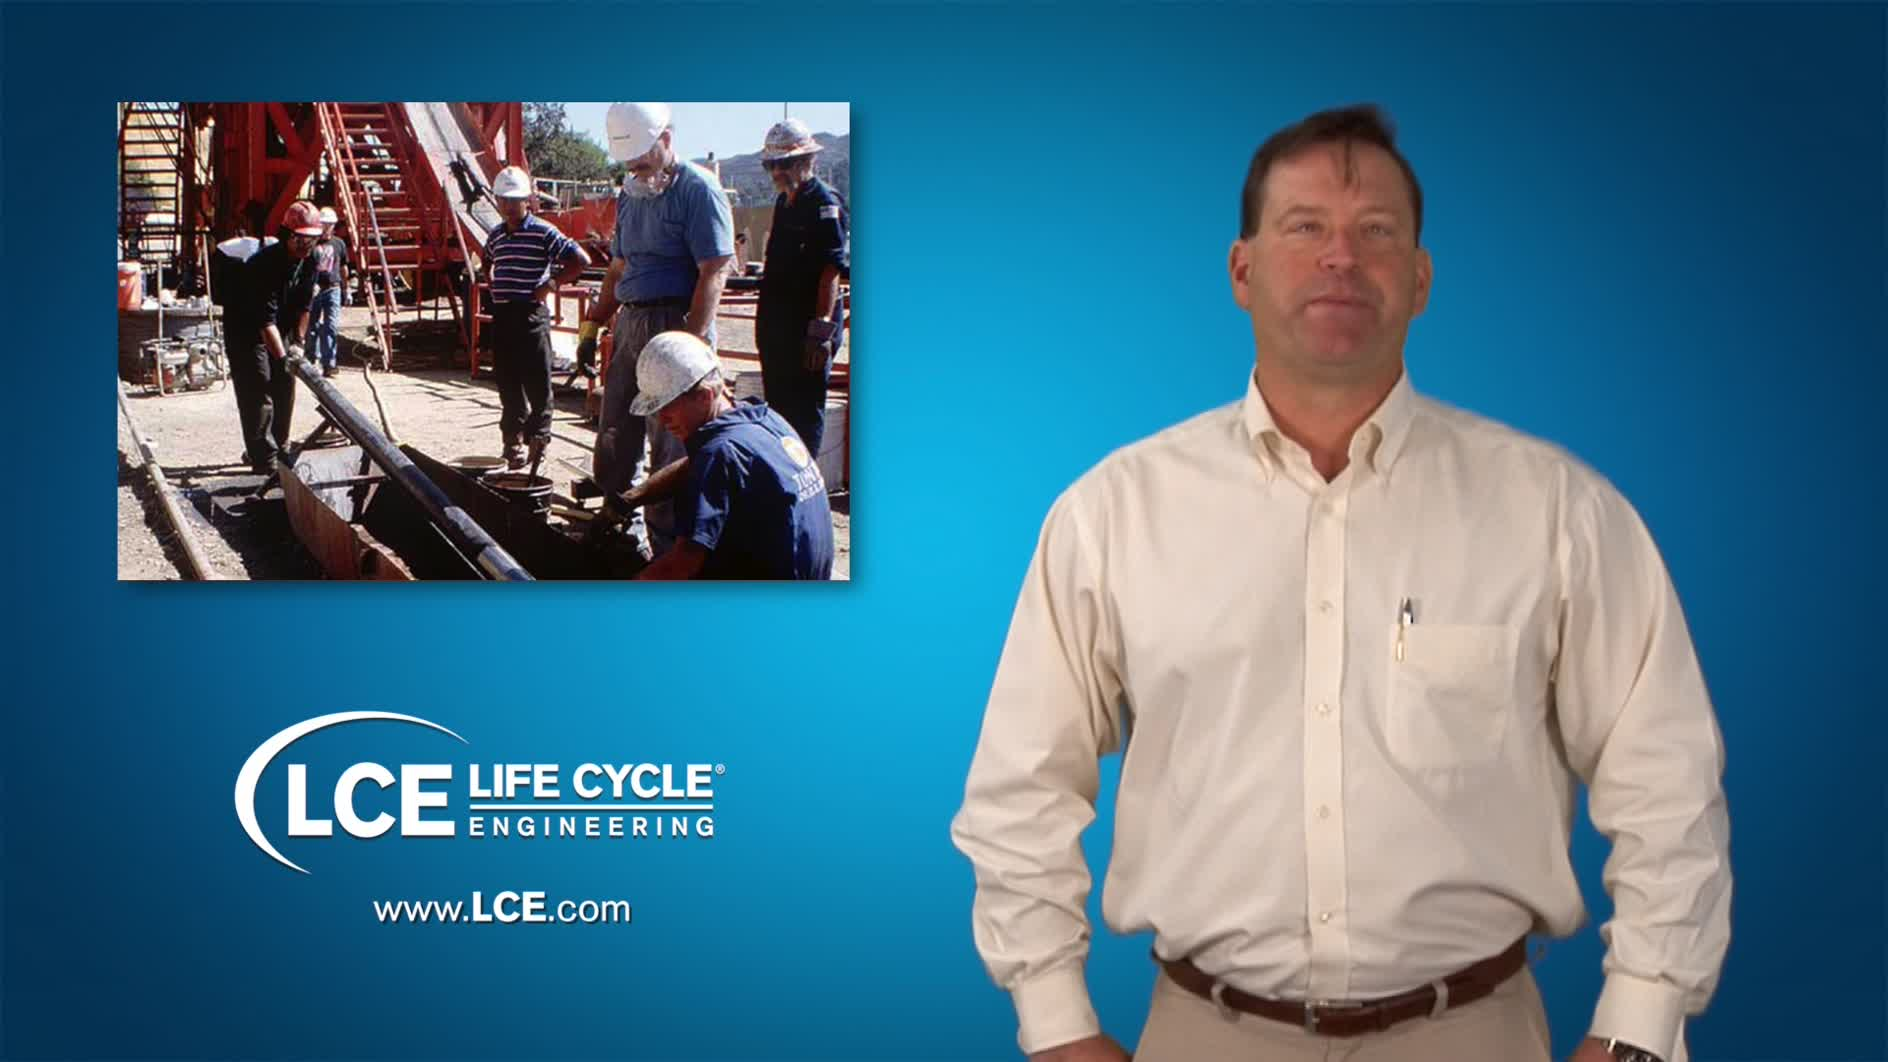 Mike Poland, Vice President of Asset Management Services at Life Cycle Engineering discusses a partnership with OSIsoft to develop real-time asset health monitoring in the oil and gas industry to reduce rig downtime and increase safety of employees and the environment.